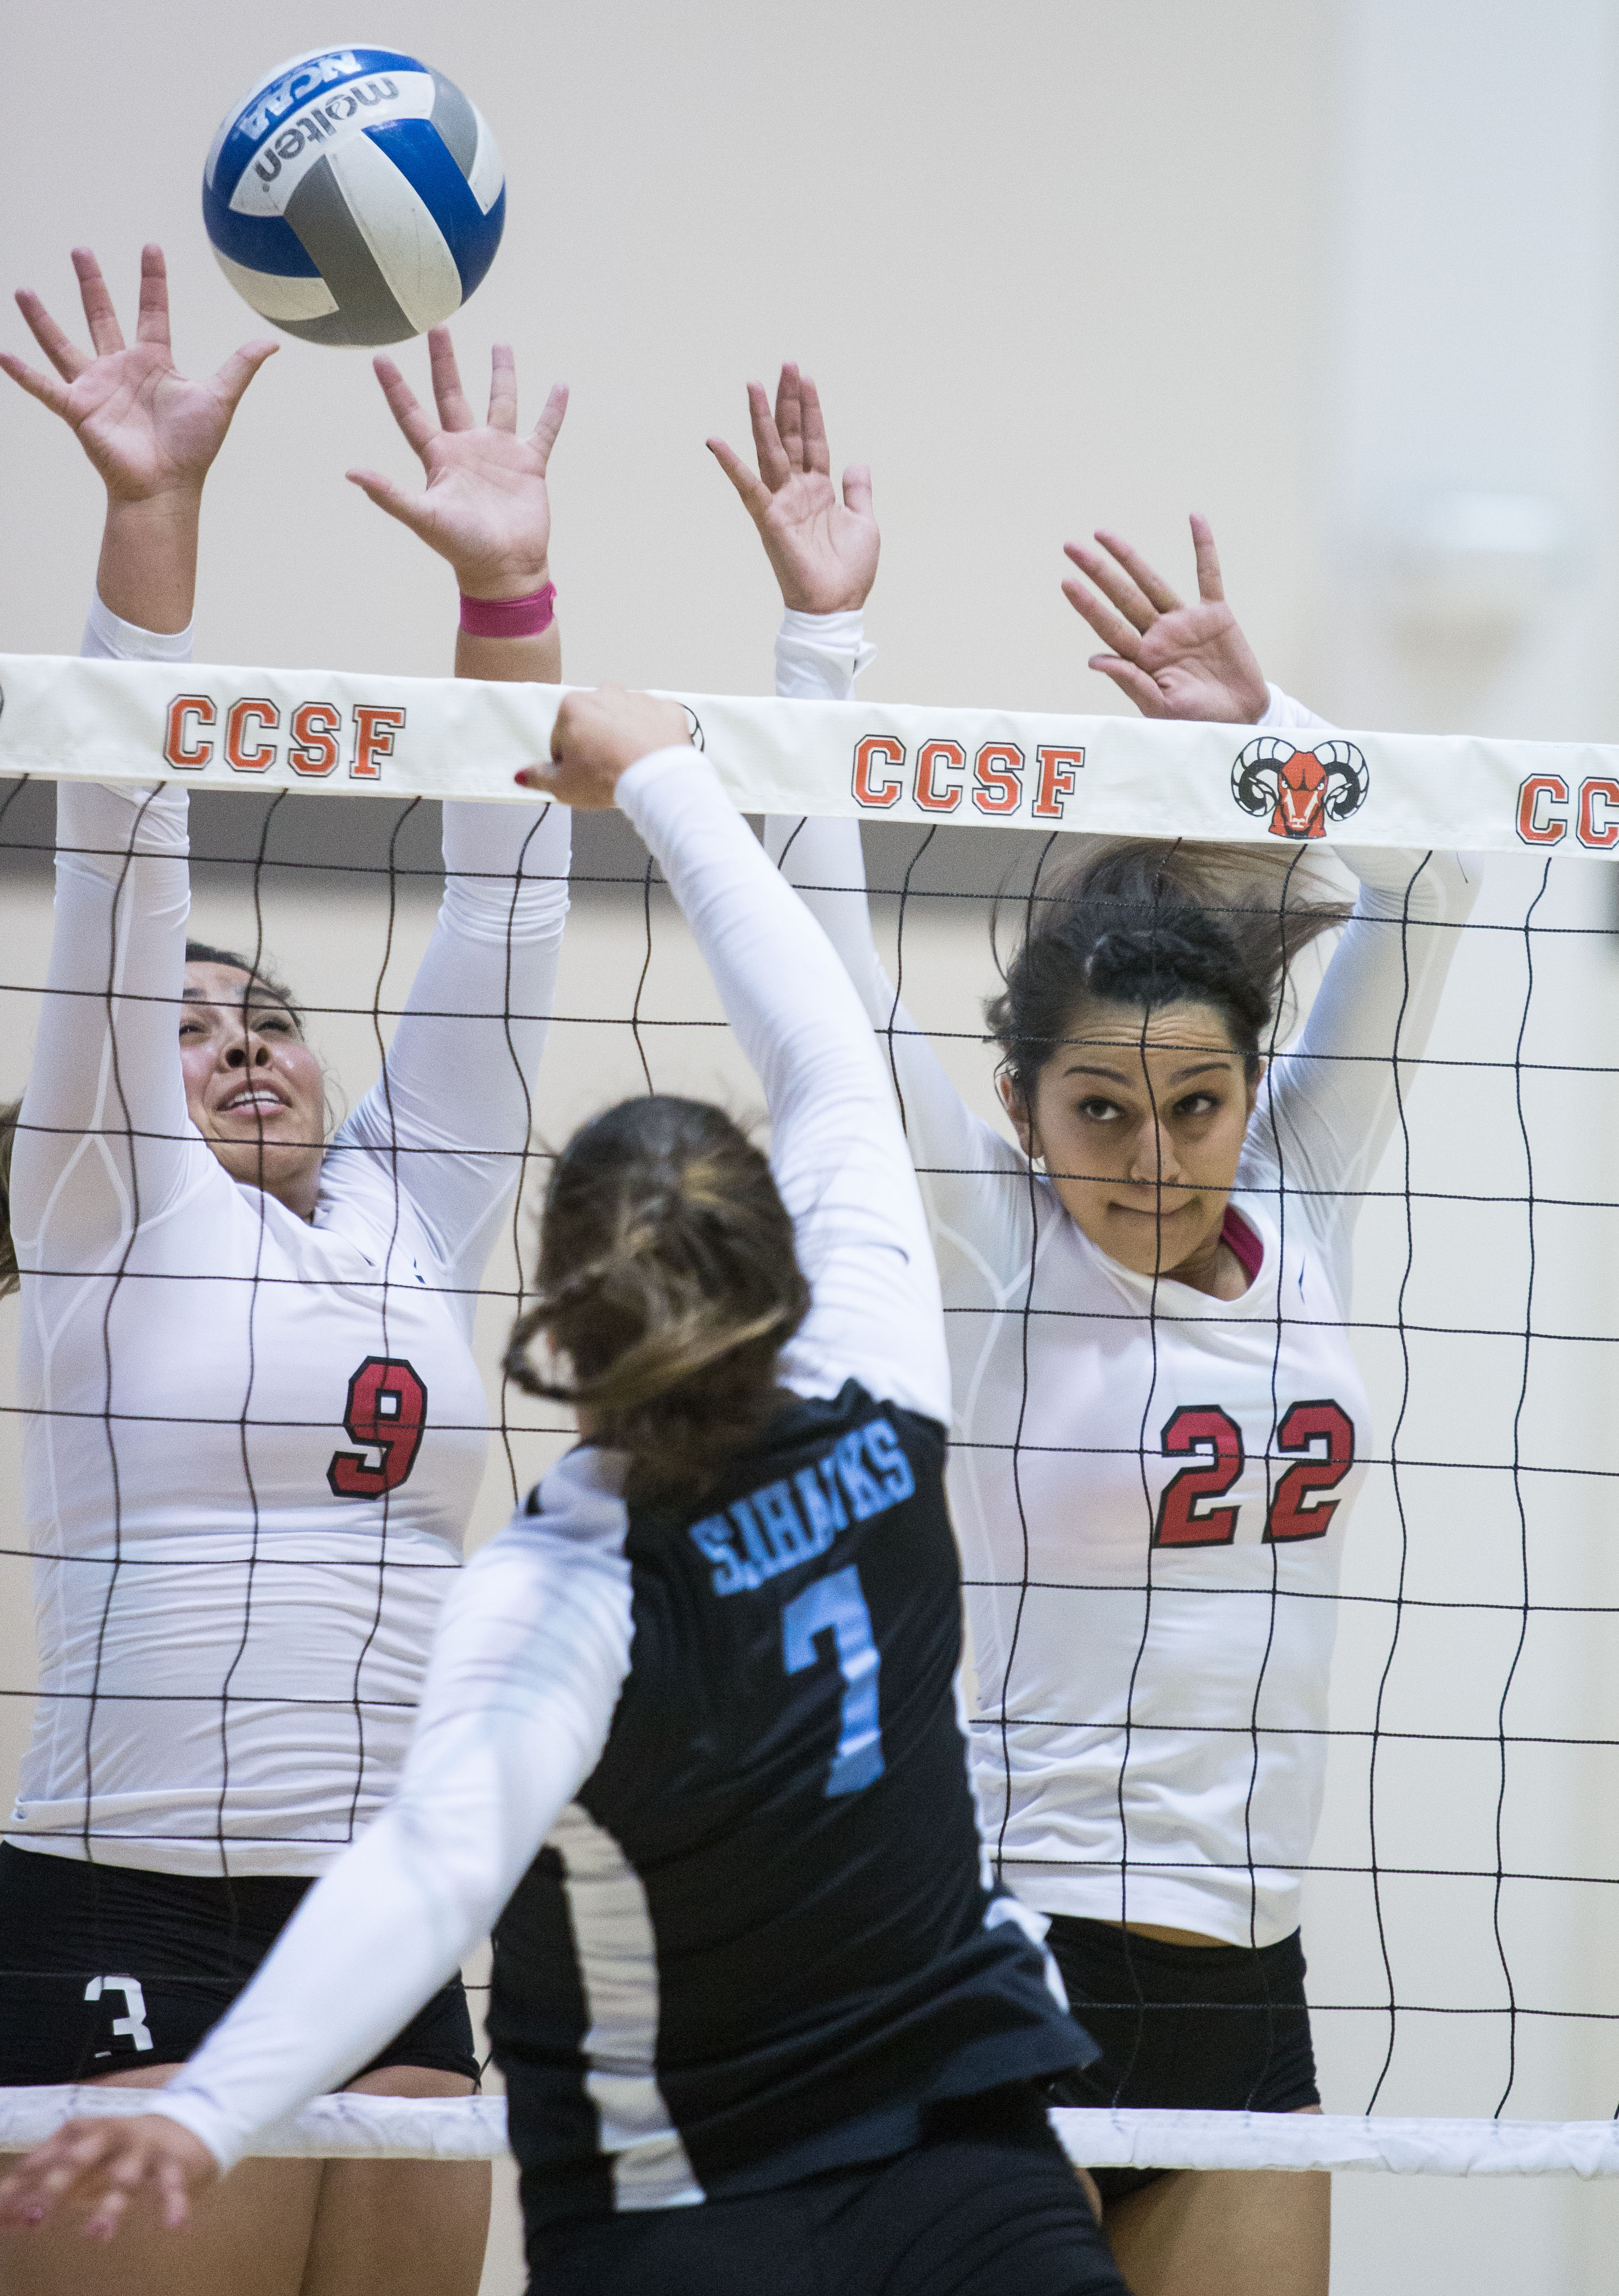 Sierra Nelson (9) and Tatiana Jimenez (22) block a shoot from the Cabrillo College player during a Volleyball game at Ocean Campus on Wednesday Oct. 28, 2015. (Photo by Khaled Sayed/The Guardsman)